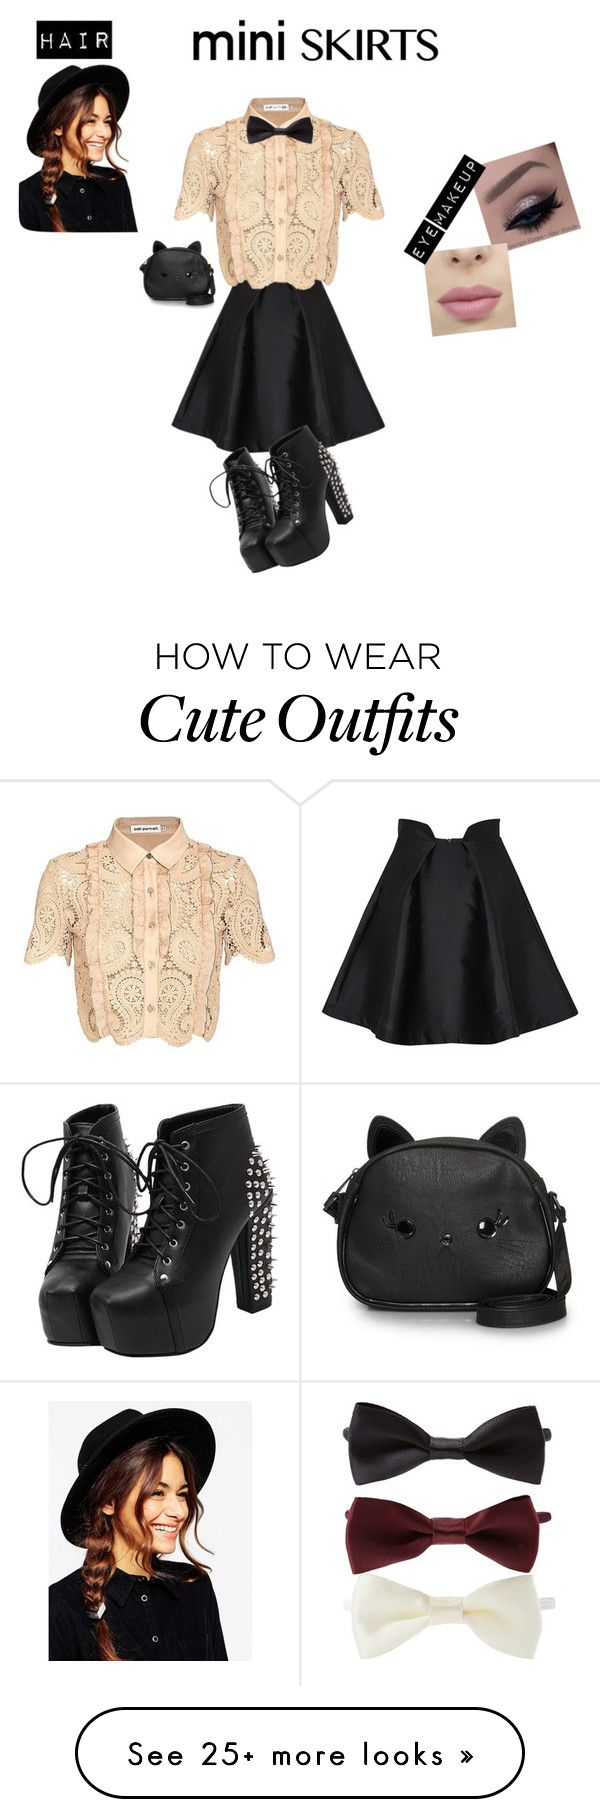 """Cute dance outfit"" by gigglesxxunicorn on Polyvore featuring Paper London, self-portrait, Forever 21, ASOS, Loungefly and MINISKIRT"